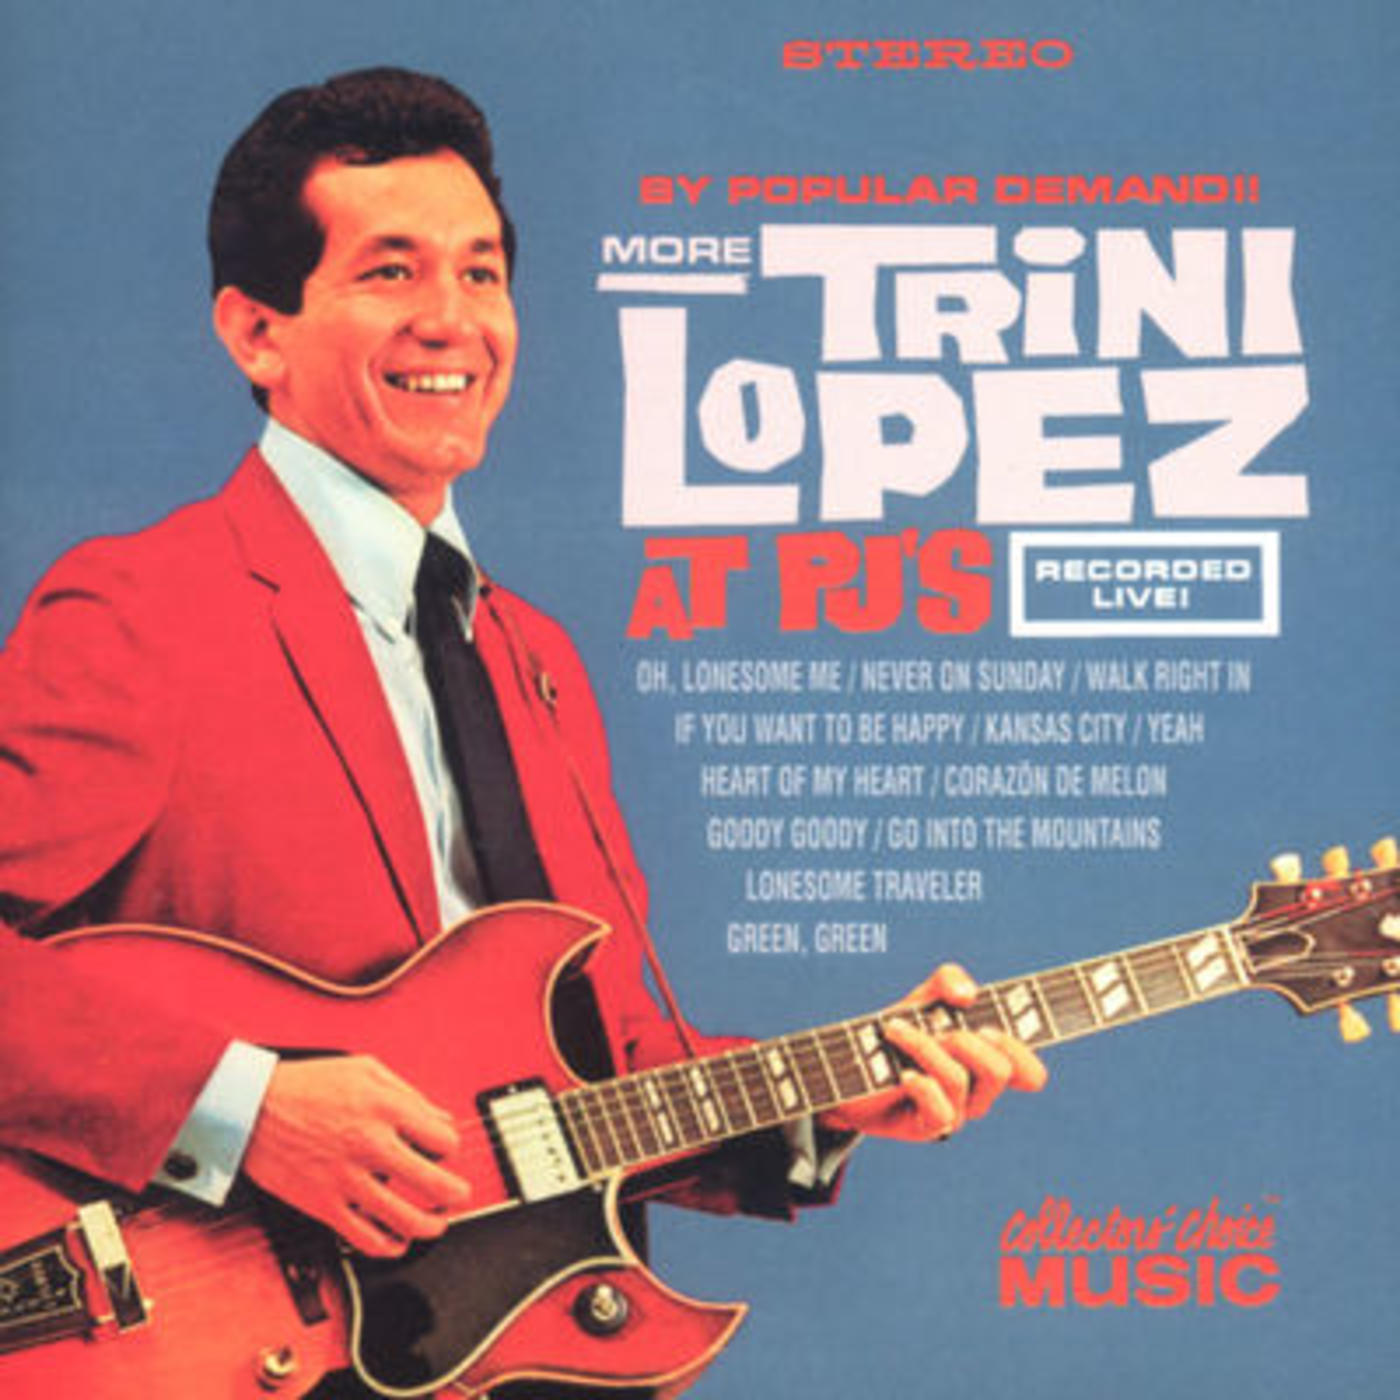 More Trini Lopez At PJ's (Live)